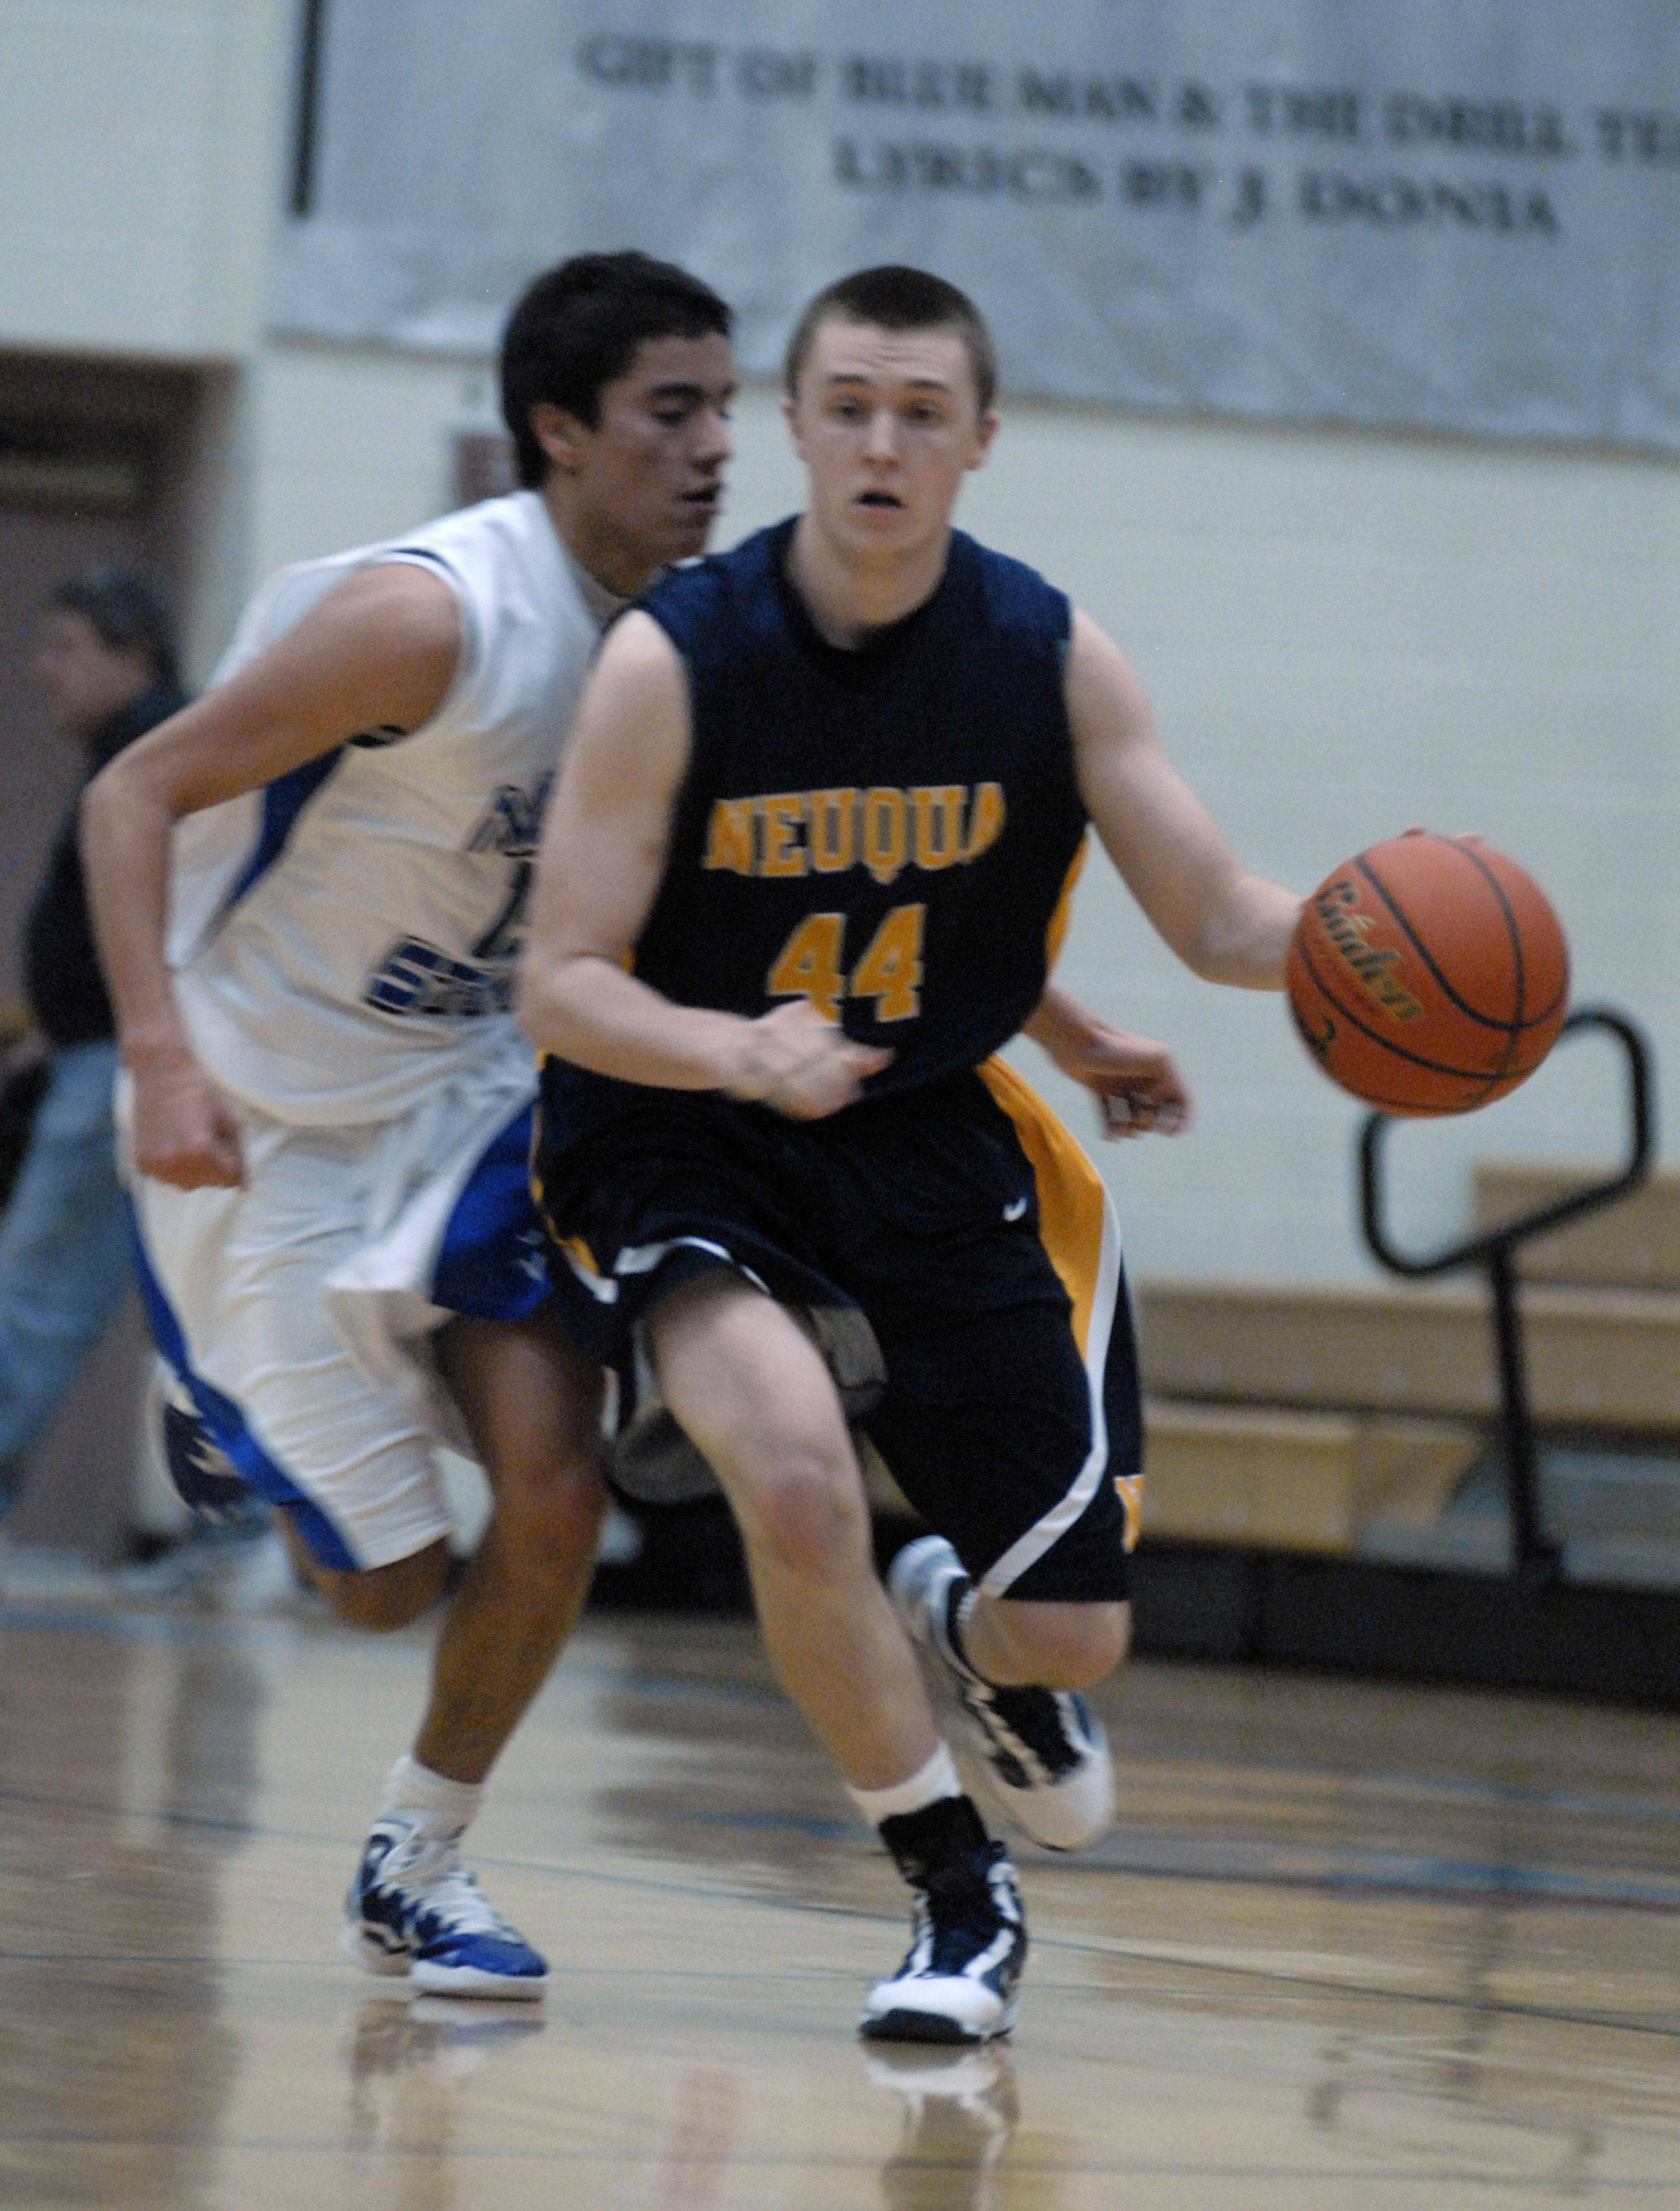 Sean Pyritz of Neuqua Valley checks looks for an open teammate while St. Charles North's Tony Neari chases .